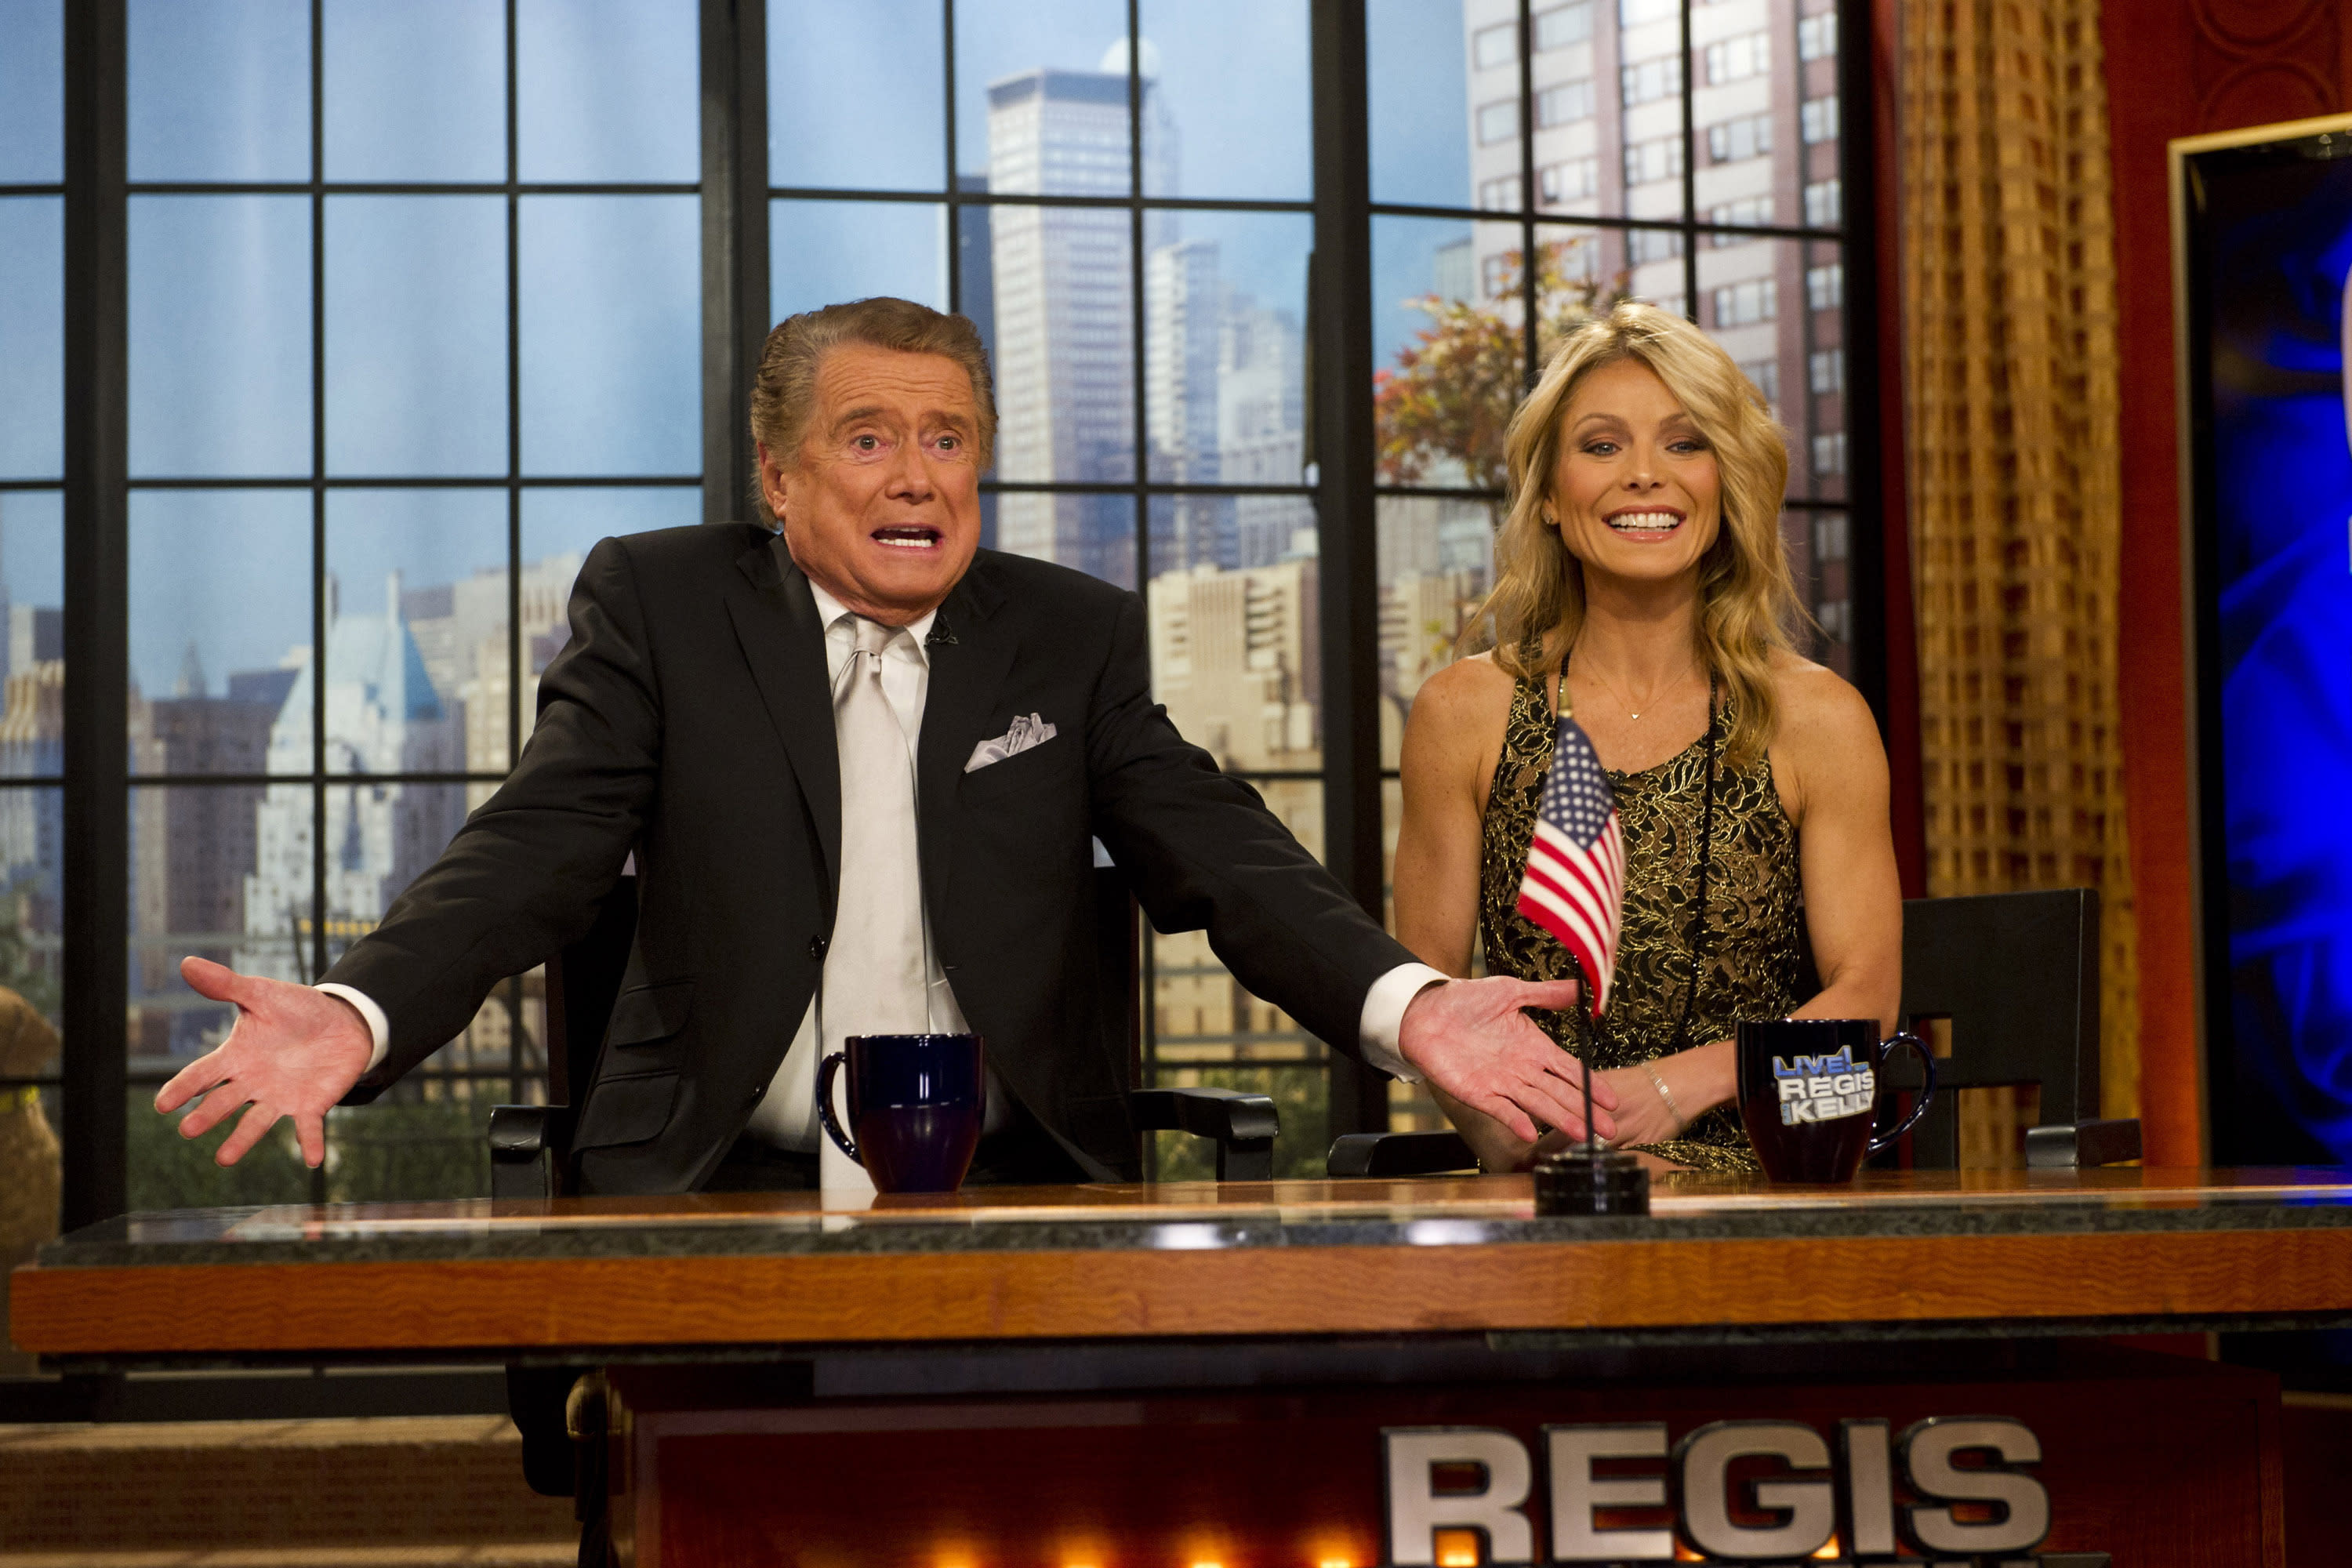 """FILE - In this Nov. 18, 2011 file photo, Regis Philbin and Kelly Ripa appear on Regis' farewell episode of """"Live! with Regis and Kelly"""", in New York. Philbin, the genial host who shared his life with television viewers over morning coffee for decades and helped himself and some fans strike it rich with the game show """"Who Wants to Be a Millionaire,"""" has died on Friday, July 24, 2020. (AP Photo/Charles Sykes, File)"""